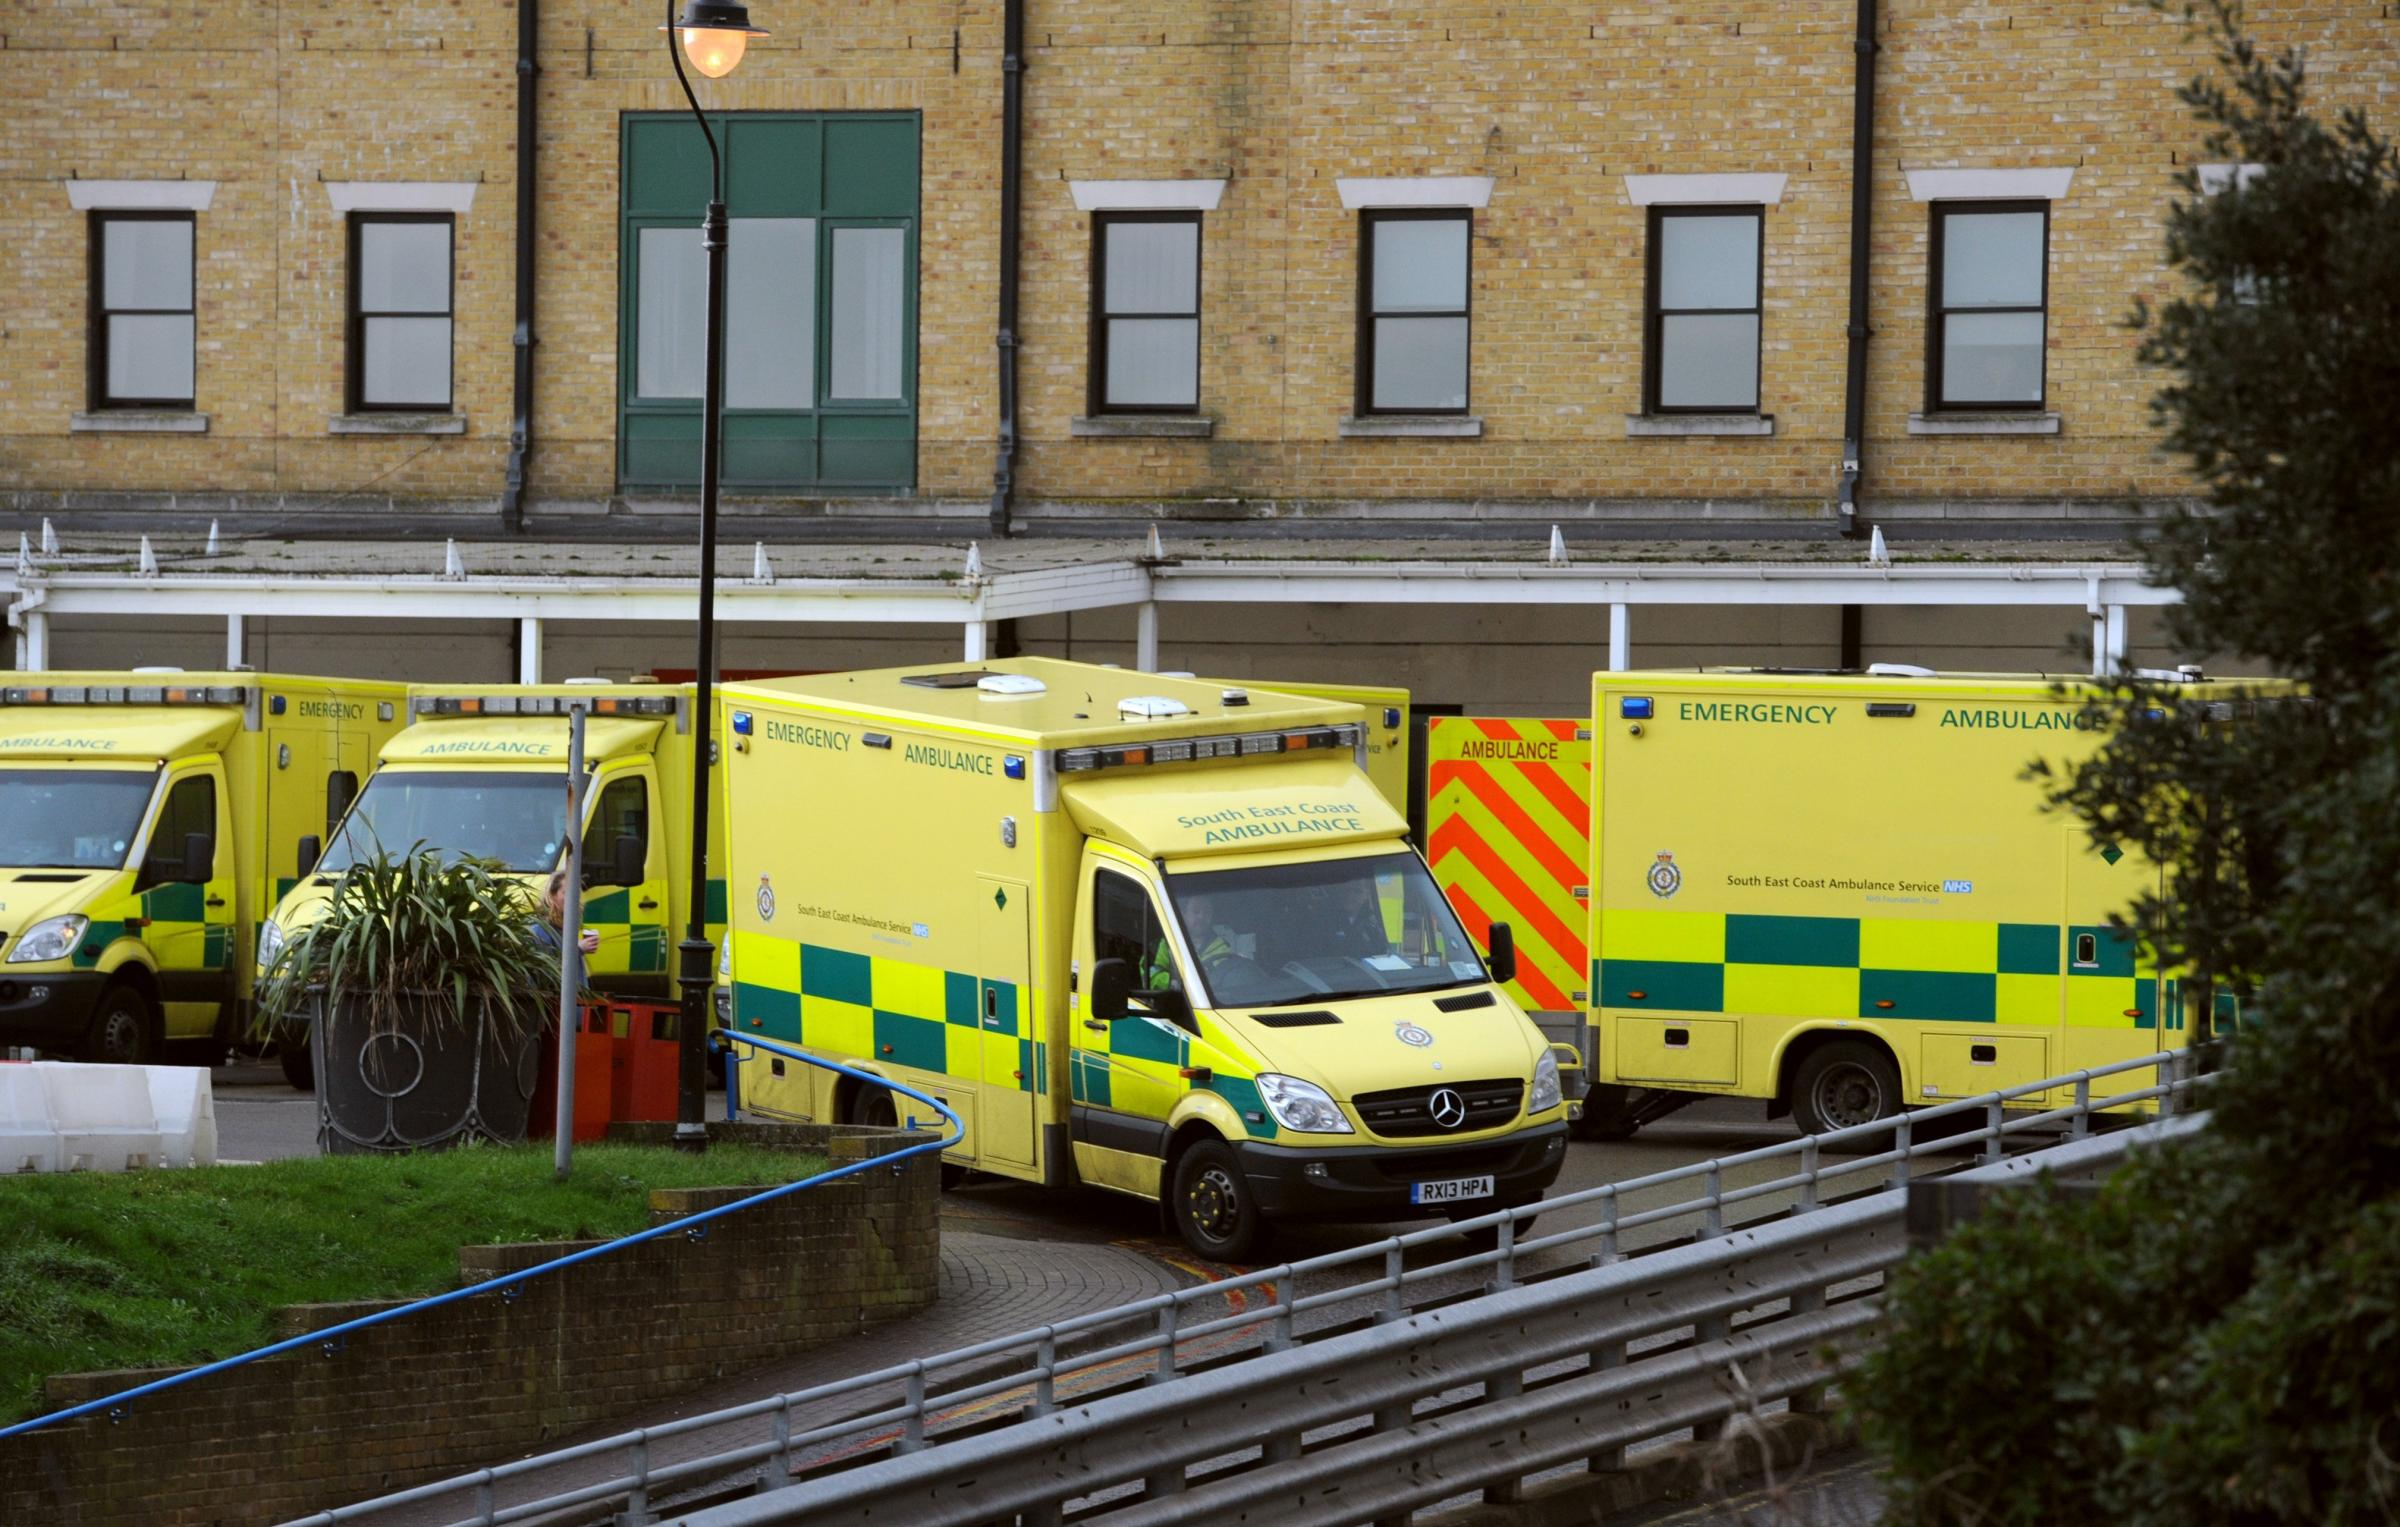 Ambulances outside the Accident and Emergency department of the Royal Sussex County Hospital